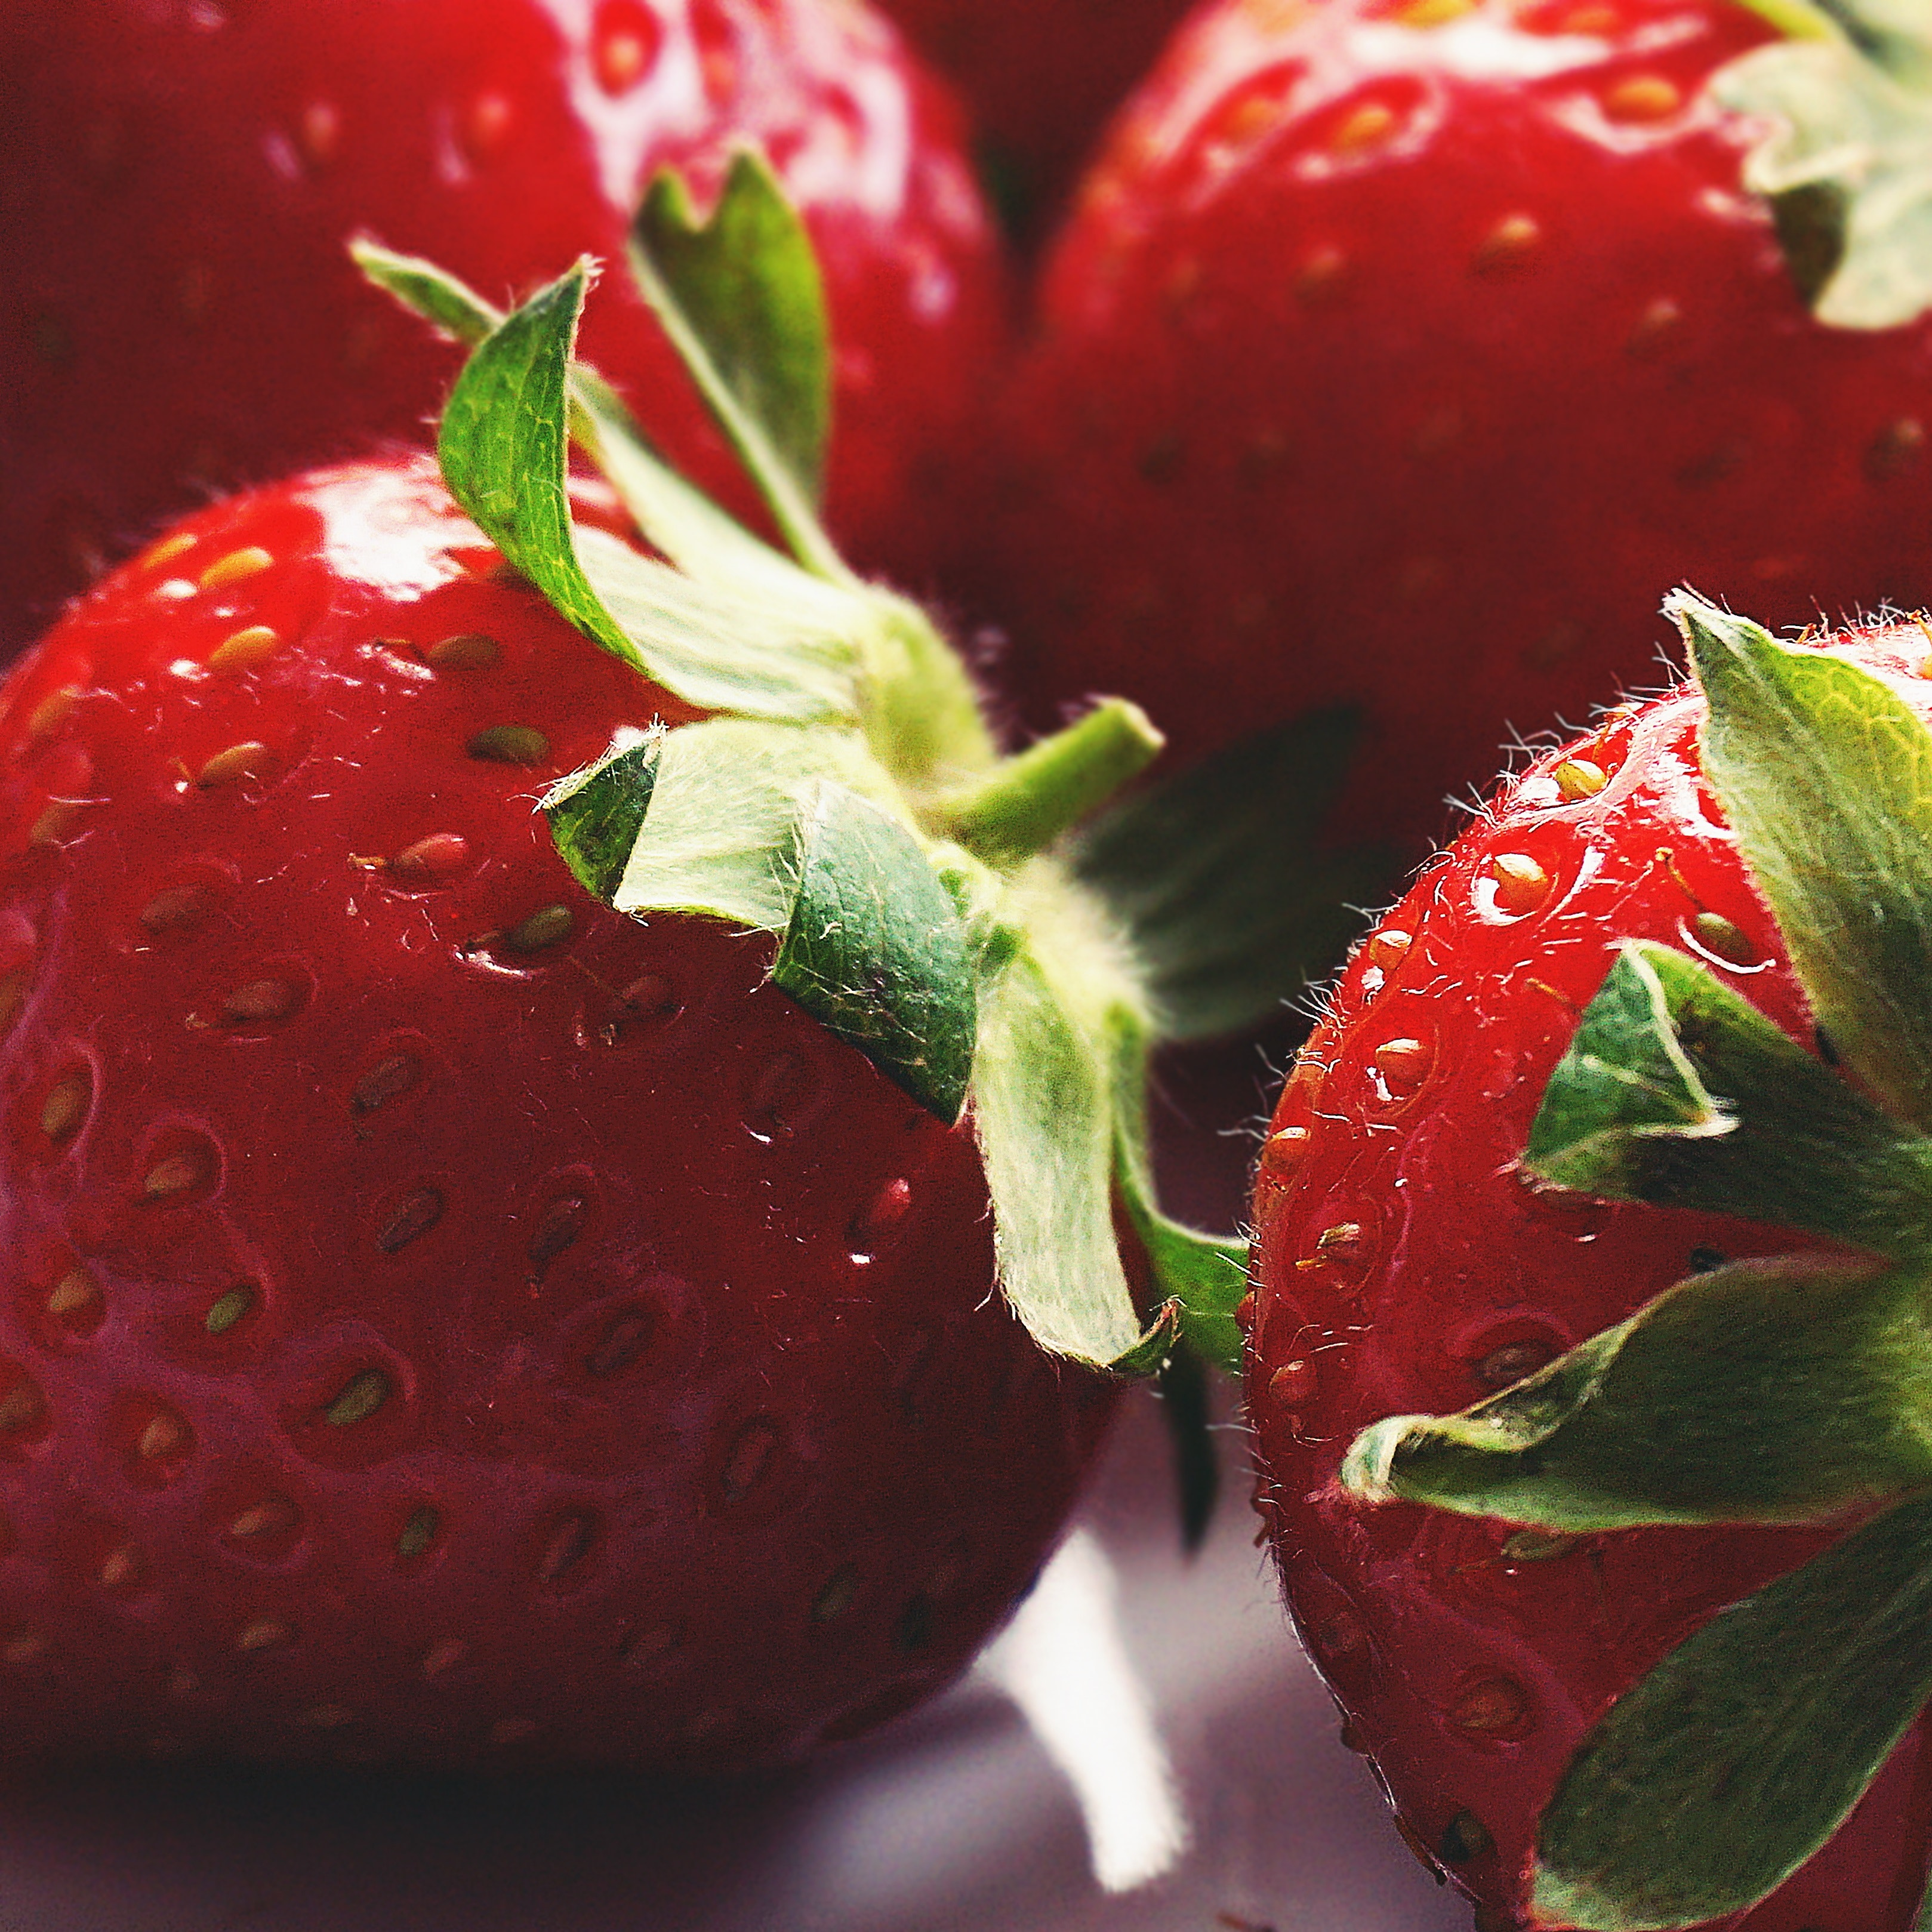 Strawberry to increase vitamin c